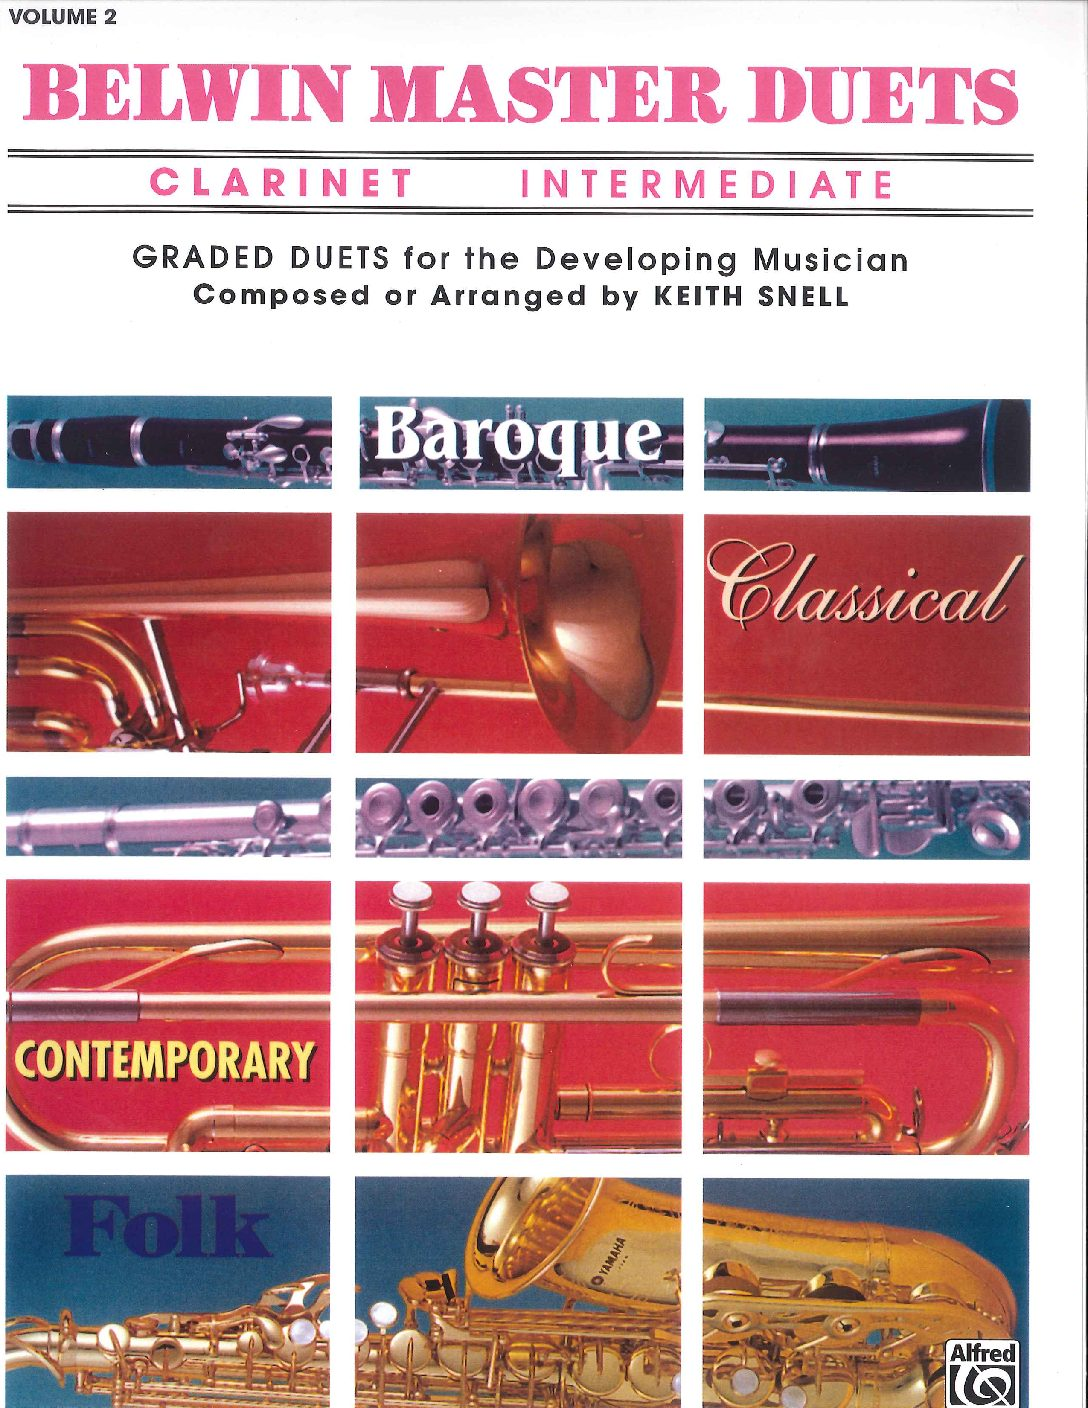 Buy Sheet Music | For Sale Online at Midwest Musical Imports